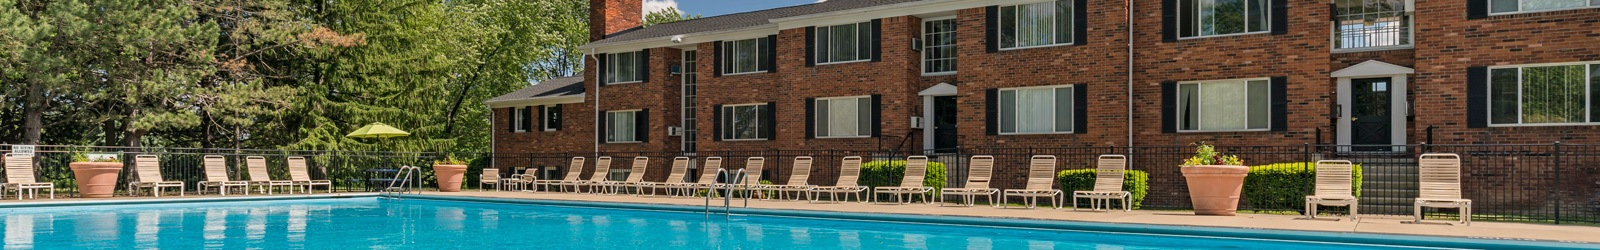 Contact Independence Green Apartments about luxury apartment community living in Farmington Hills, MI